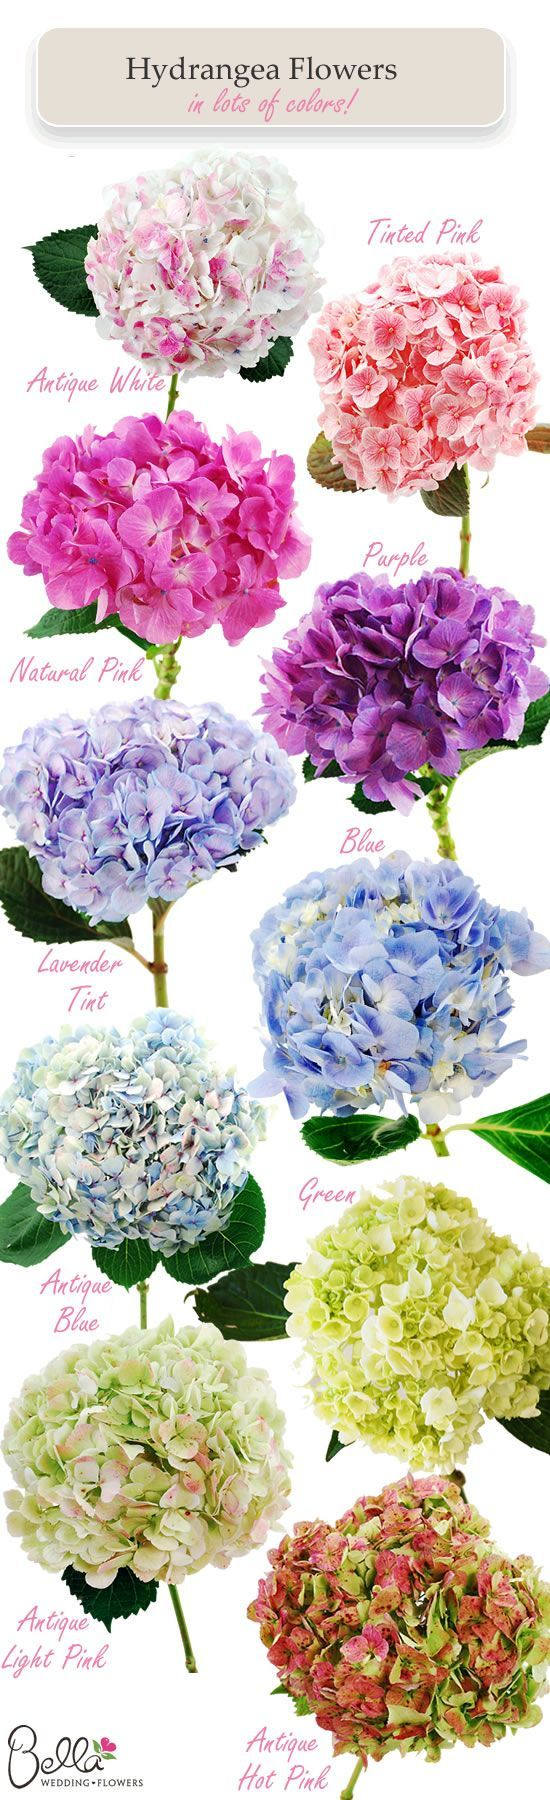 100 Different Types Of Flowers And Their Names For The Home